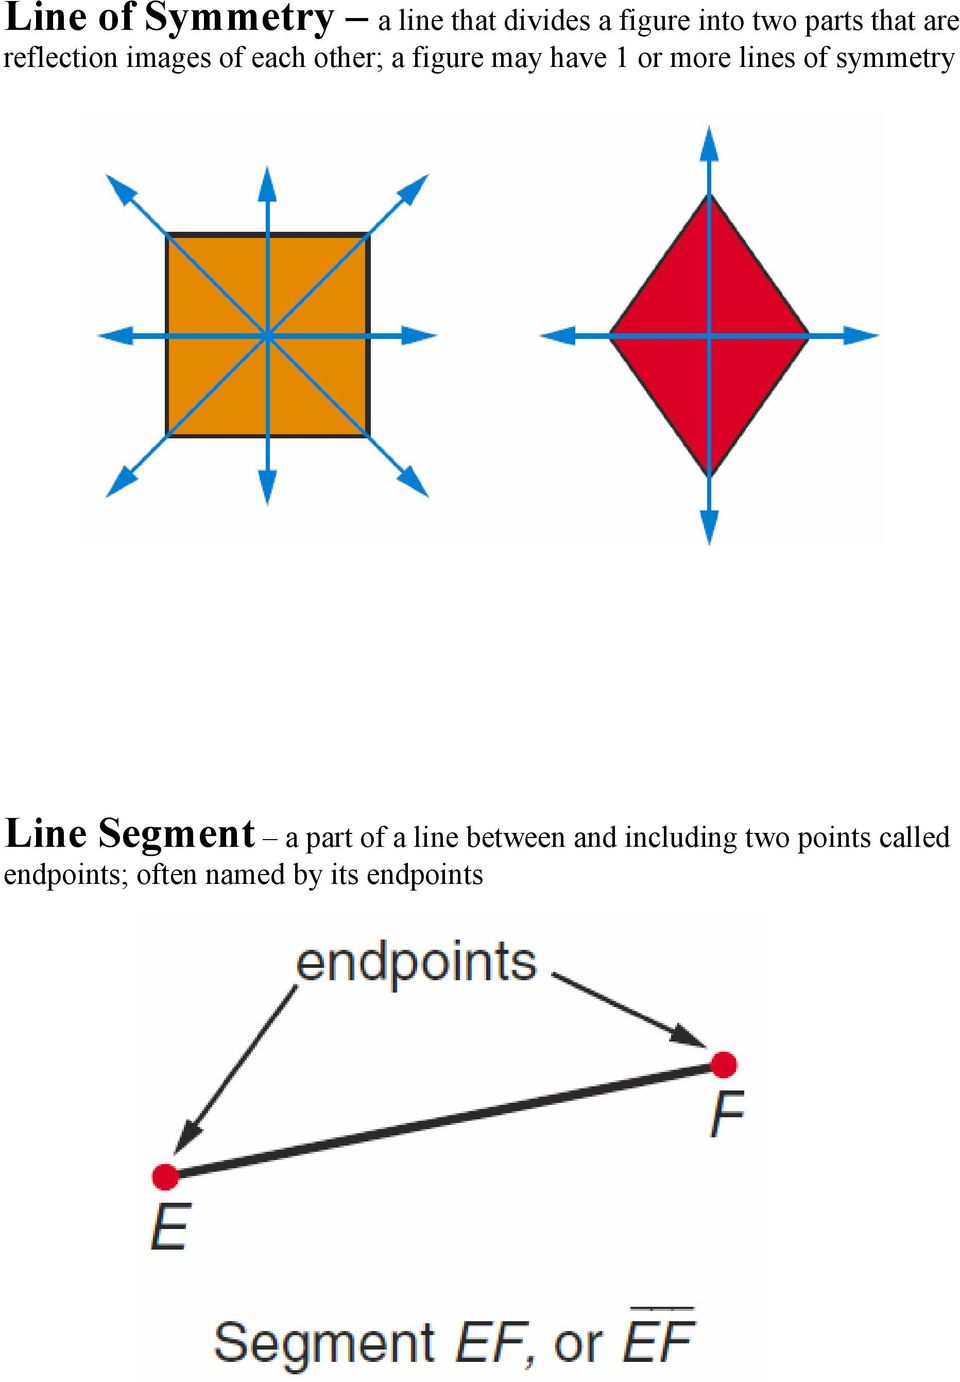 more lines of symmetry Line Segment a part of a line between and